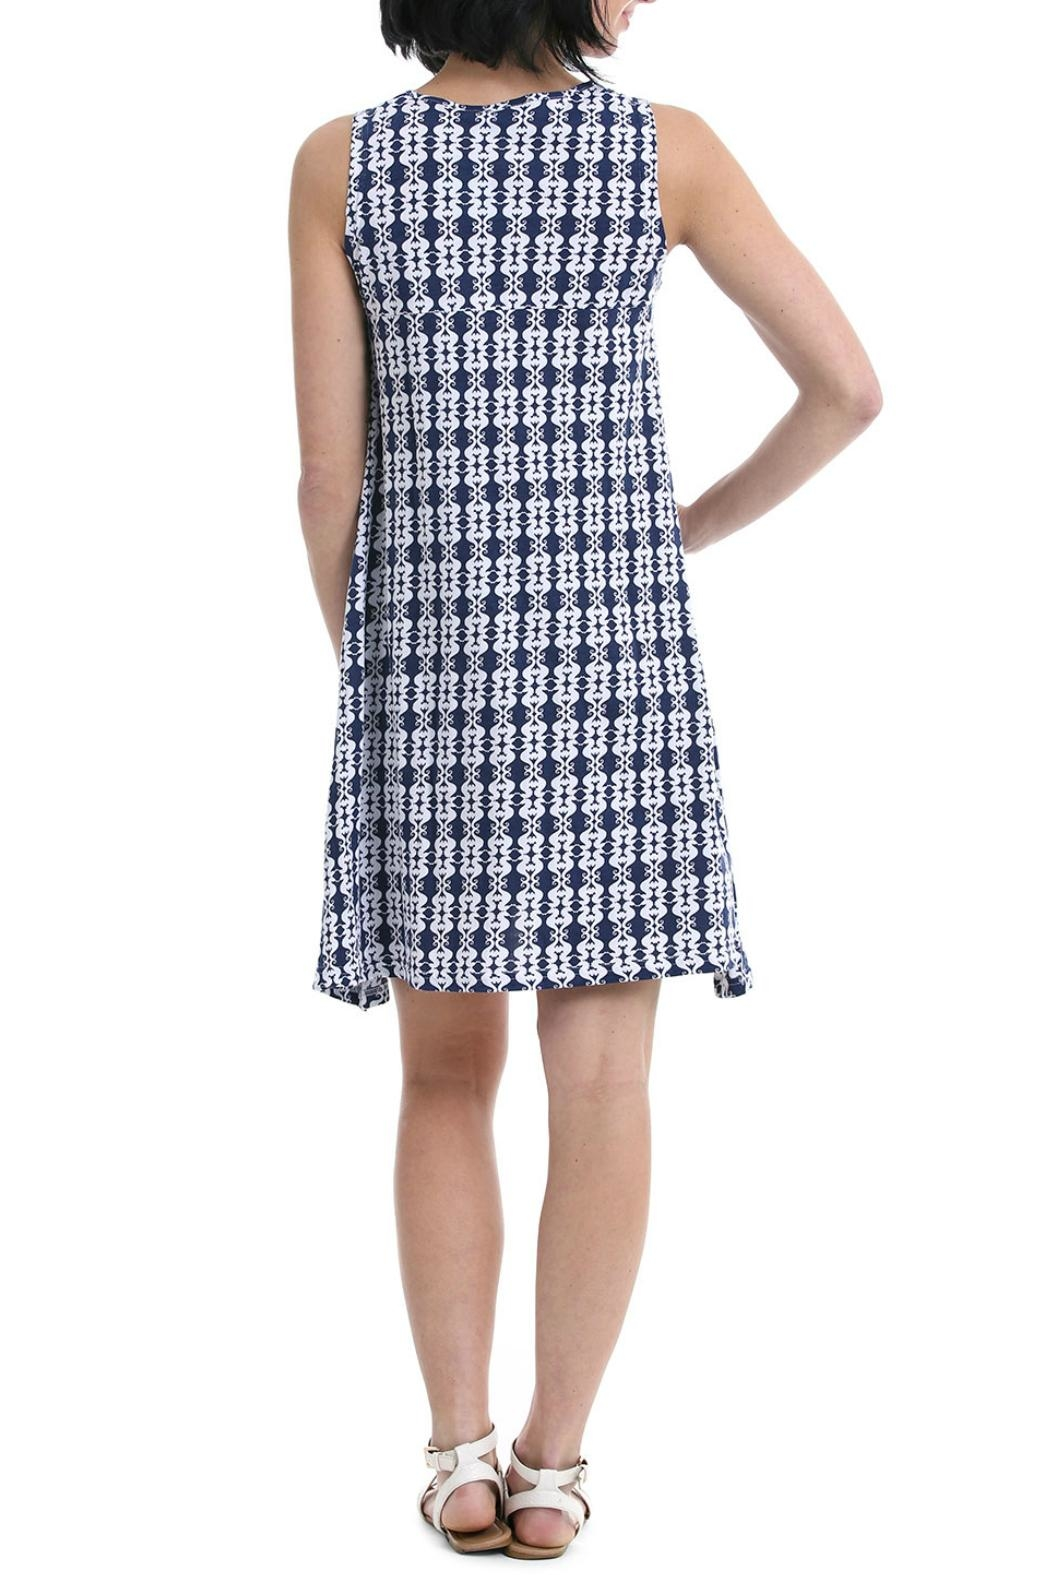 Malabar Bay Sea Kisses Dress - Front Full Image